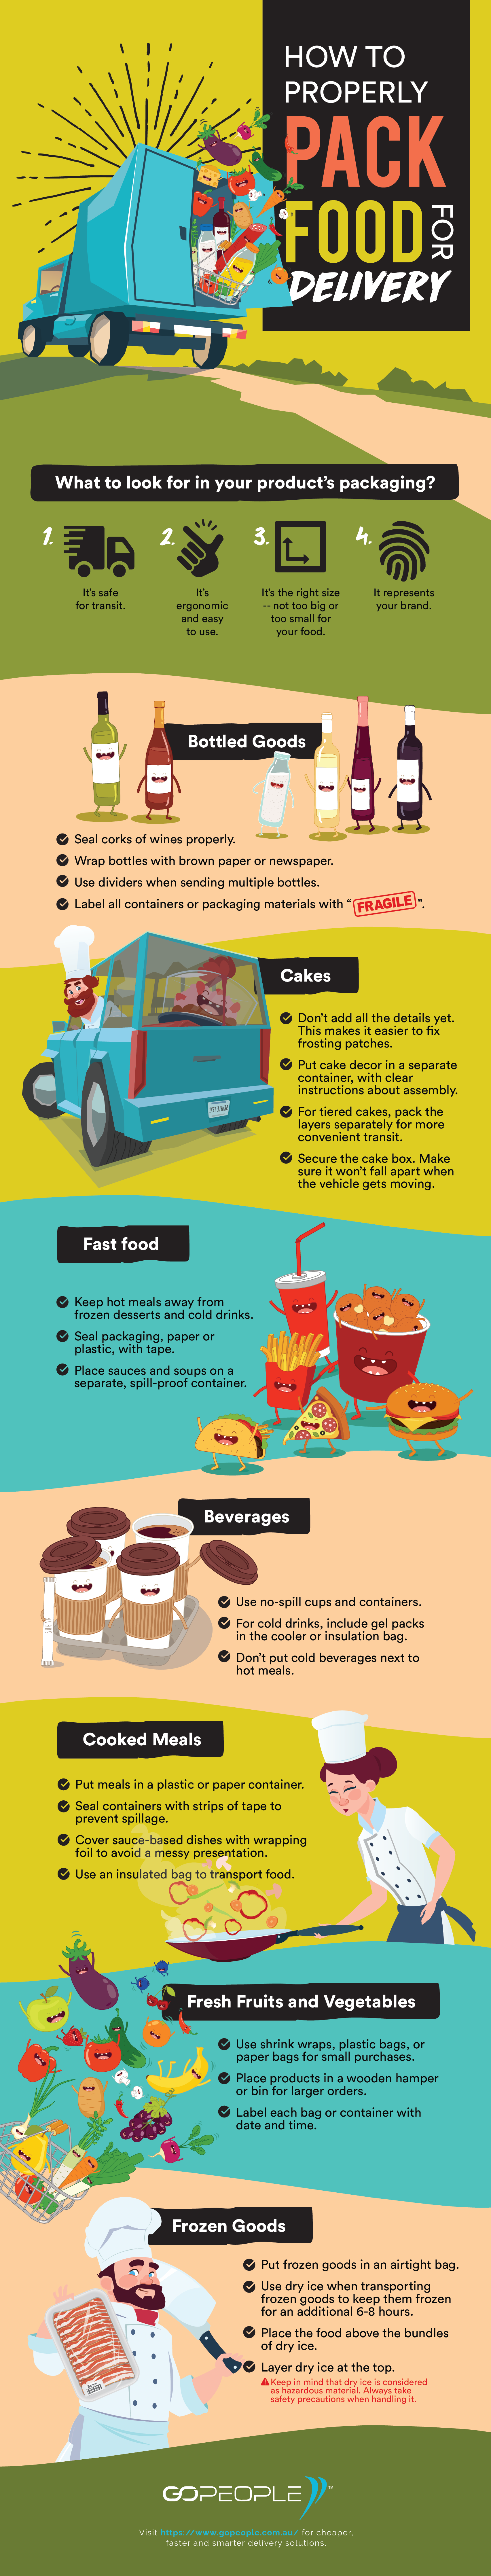 Never Underestimate Customer Satisfaction: How to Correctly Pack Food for Delivery - Infographic